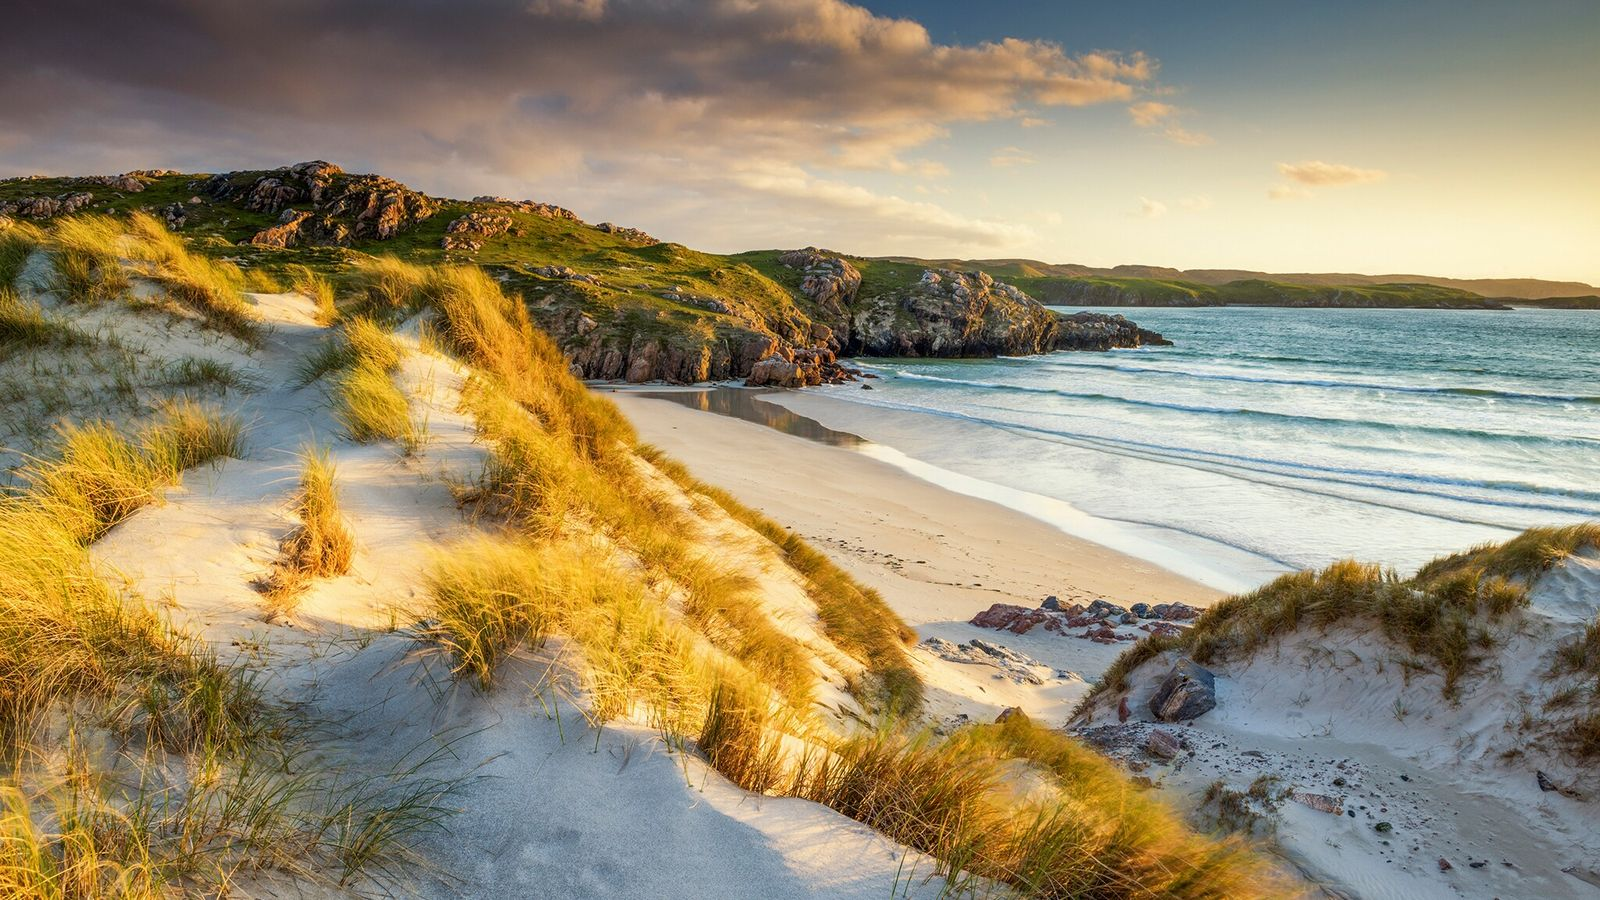 UK travel guide: staycation ideas for 2021 and beyond